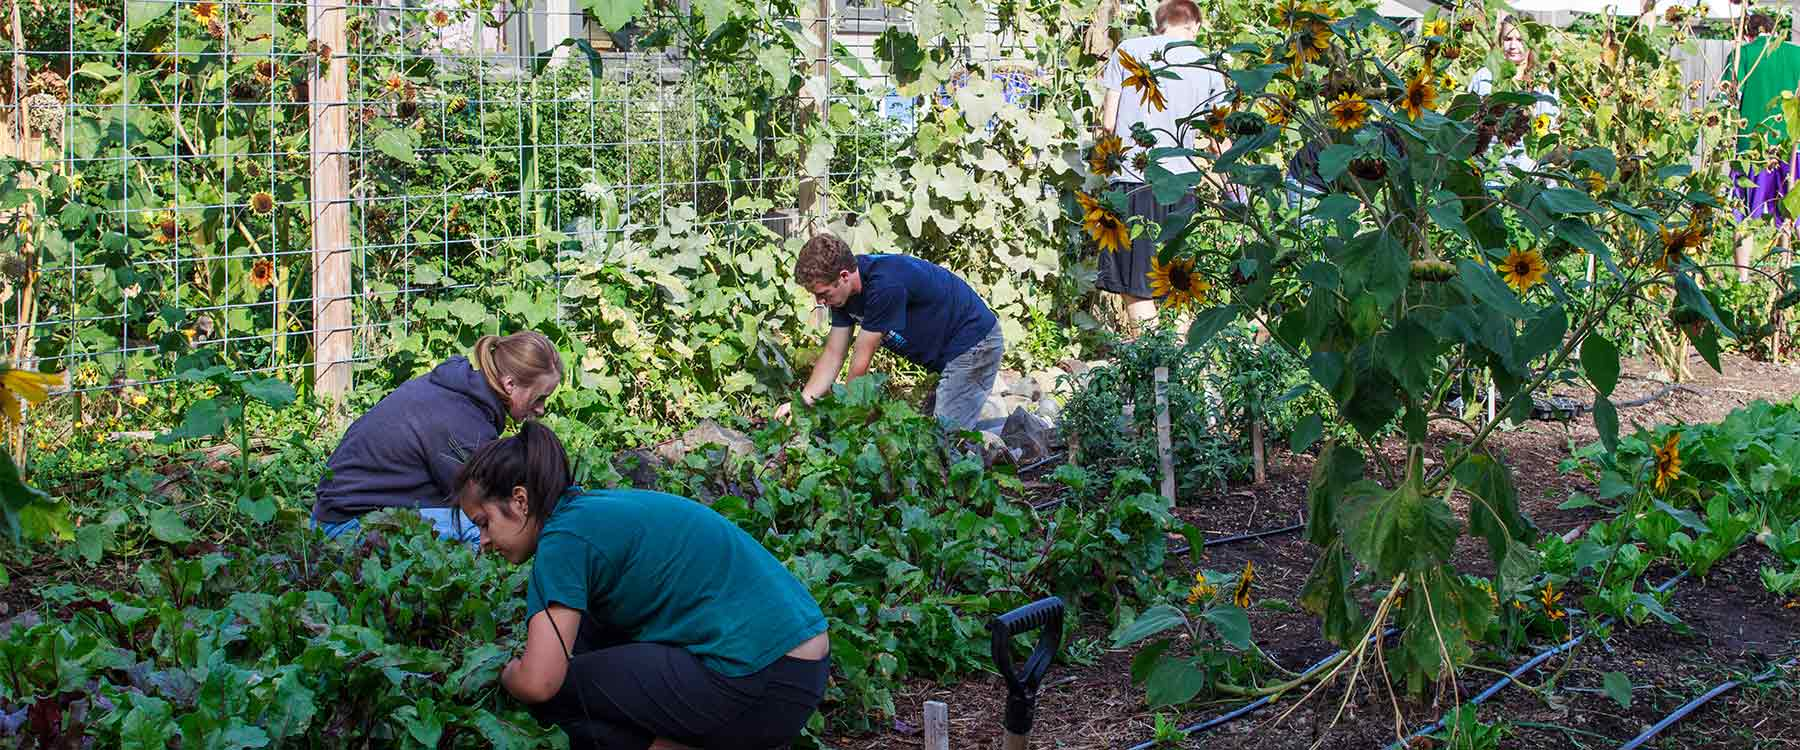 Three students crouch down working amid rows of plants in a garden.